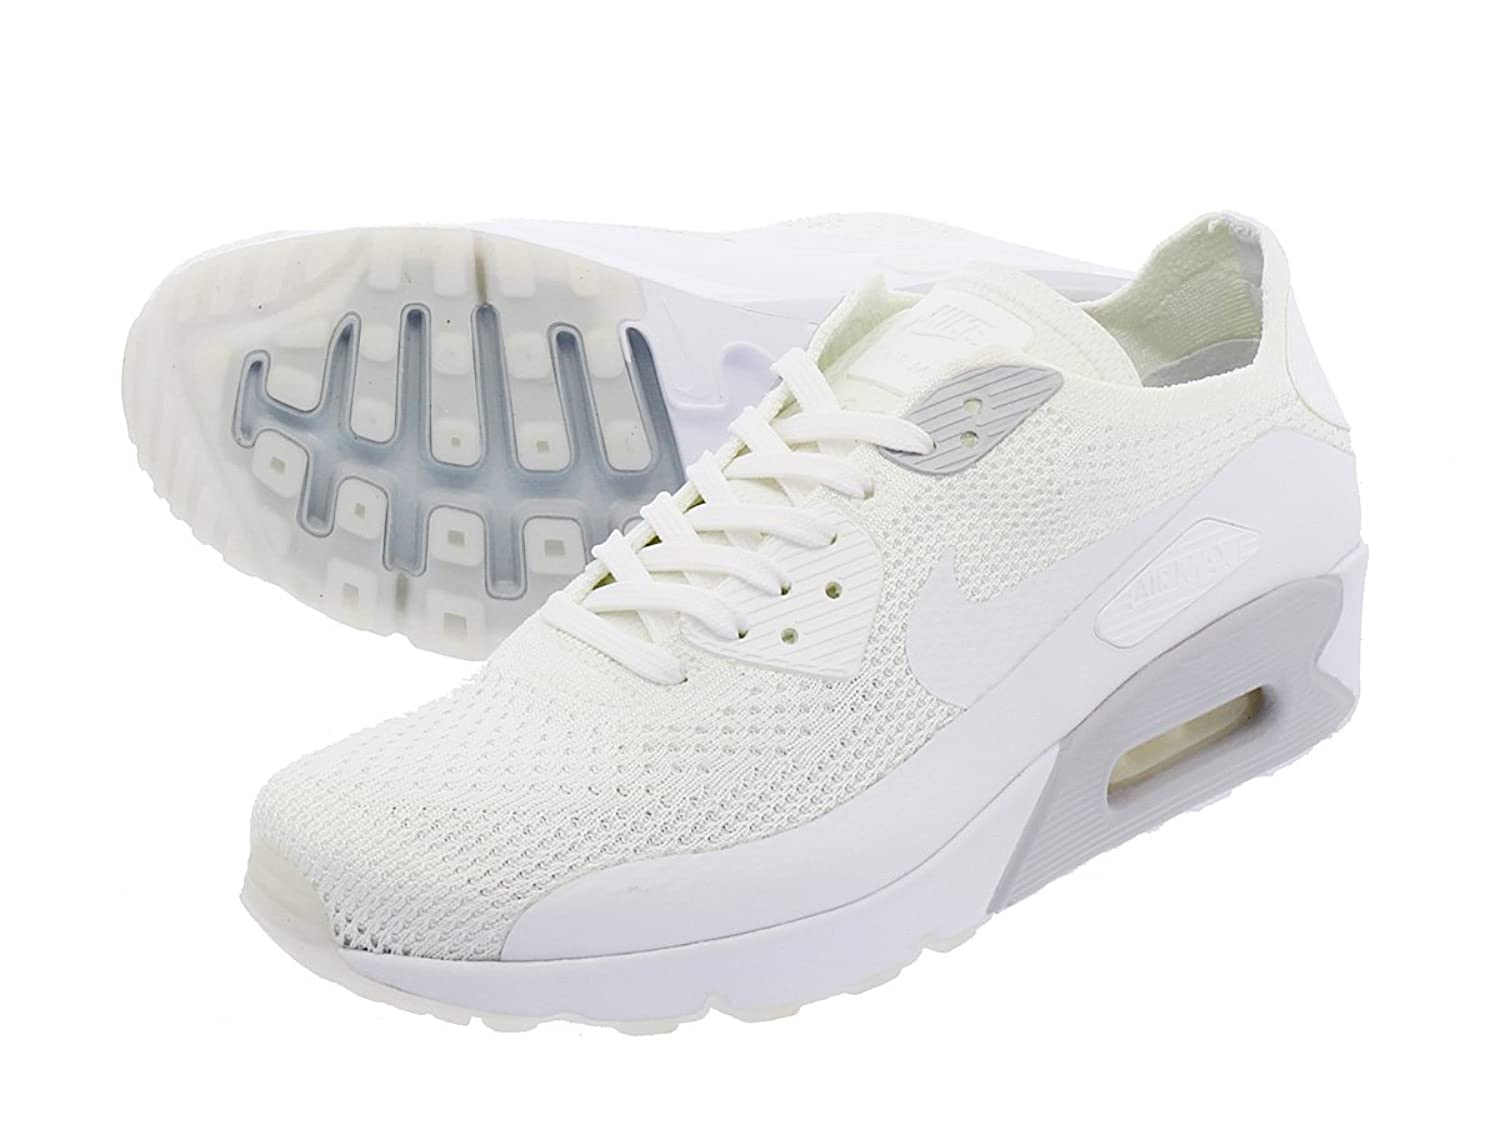 NIKE「AIR MAX 90 ULTRA 2.0 FLYKNIT」